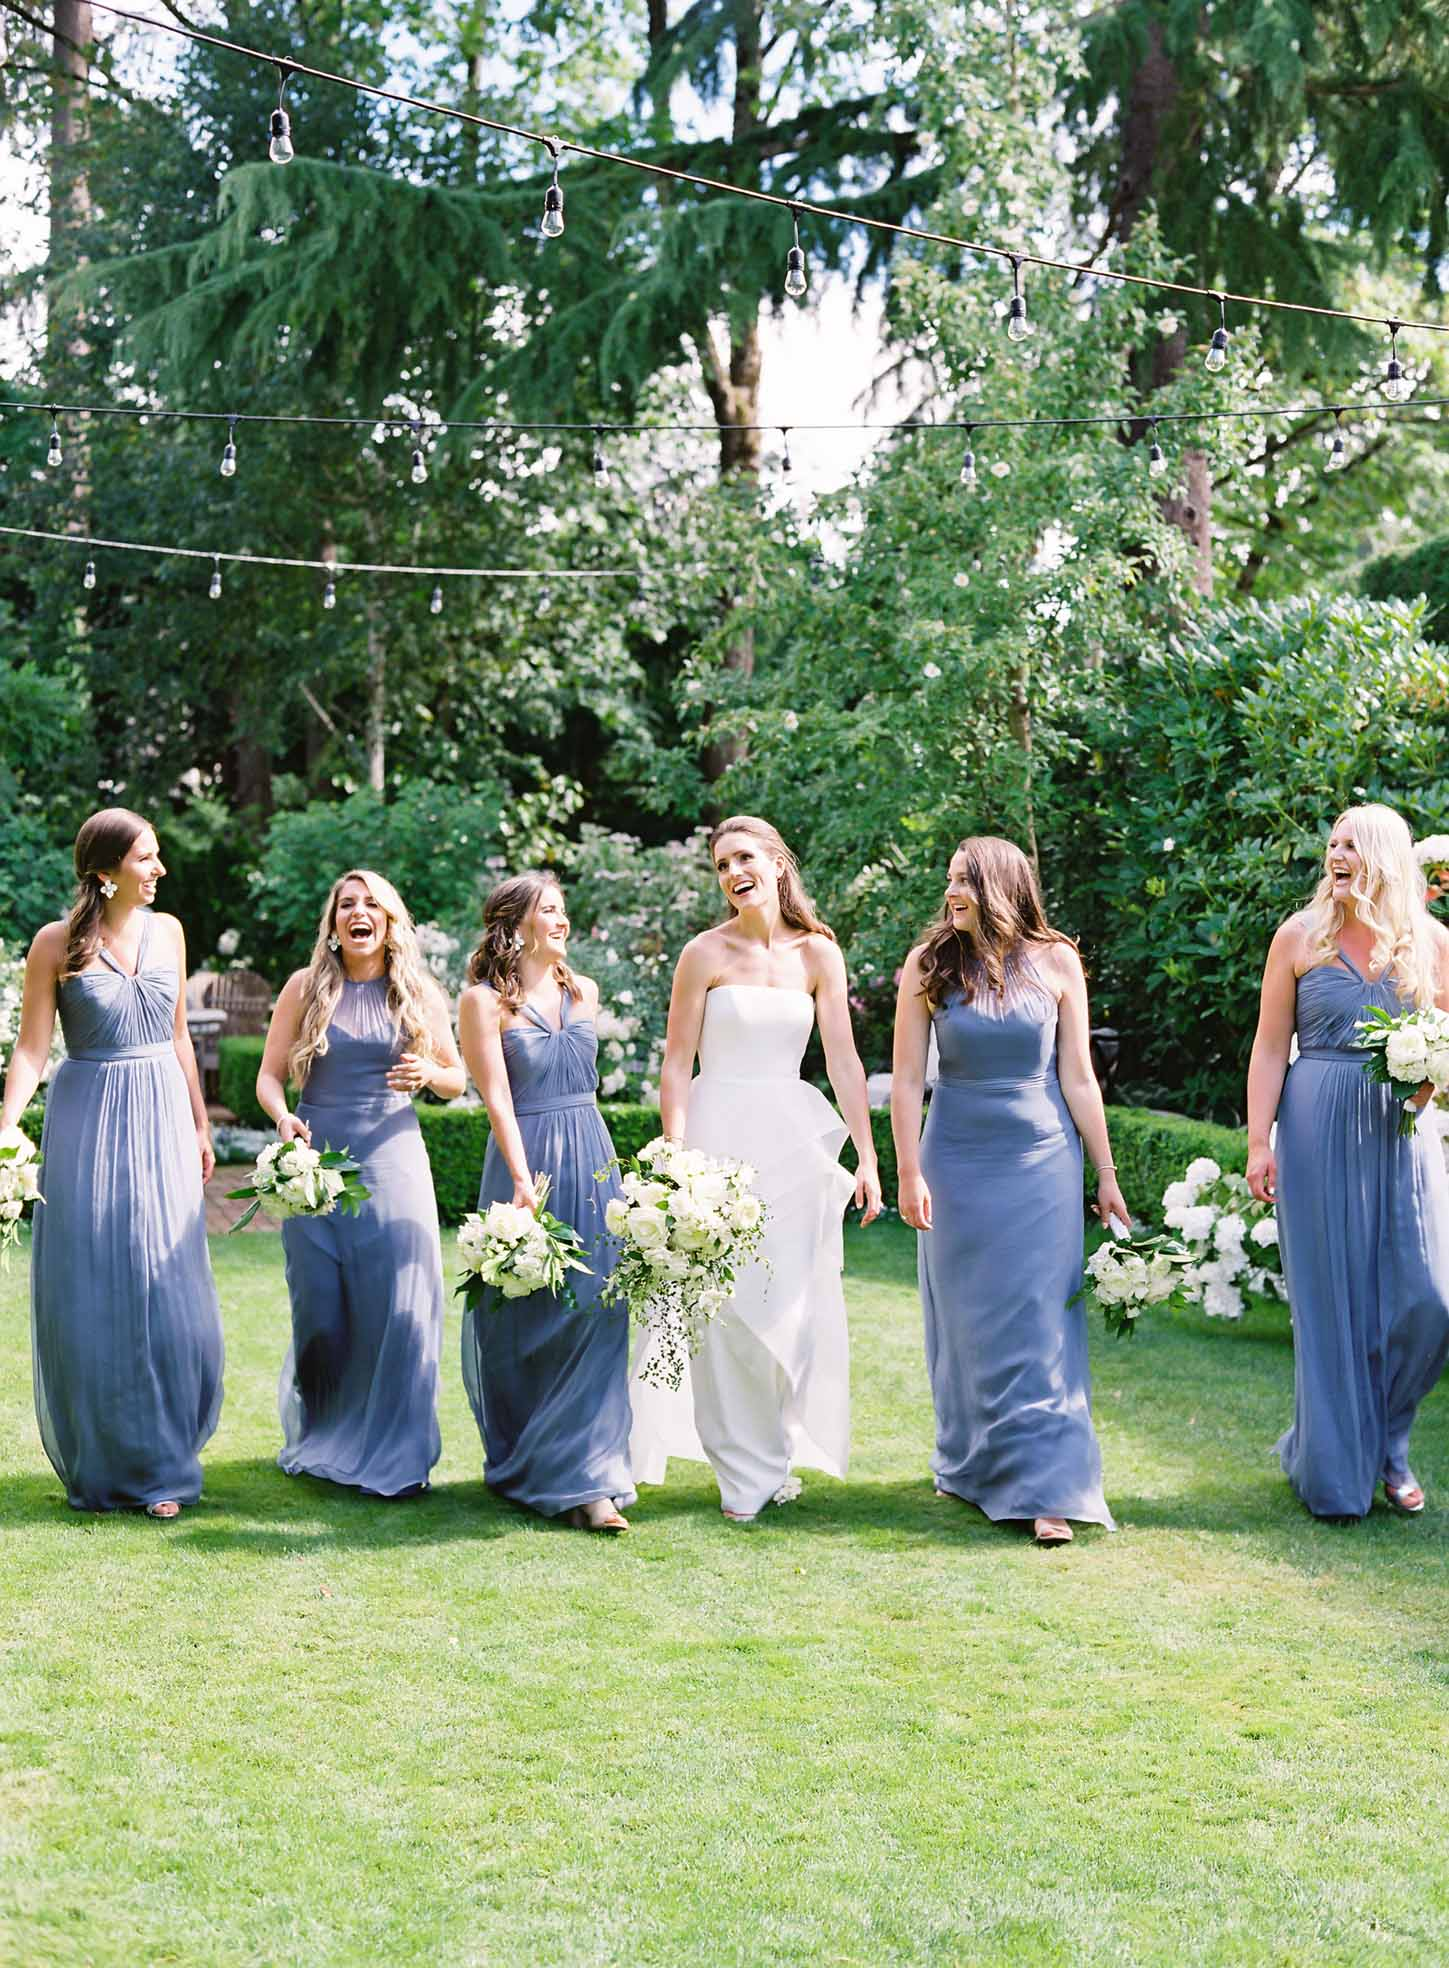 Bride and her bridesmaids walking in garden, holding bouquets of white flowers - Flora Nova Design